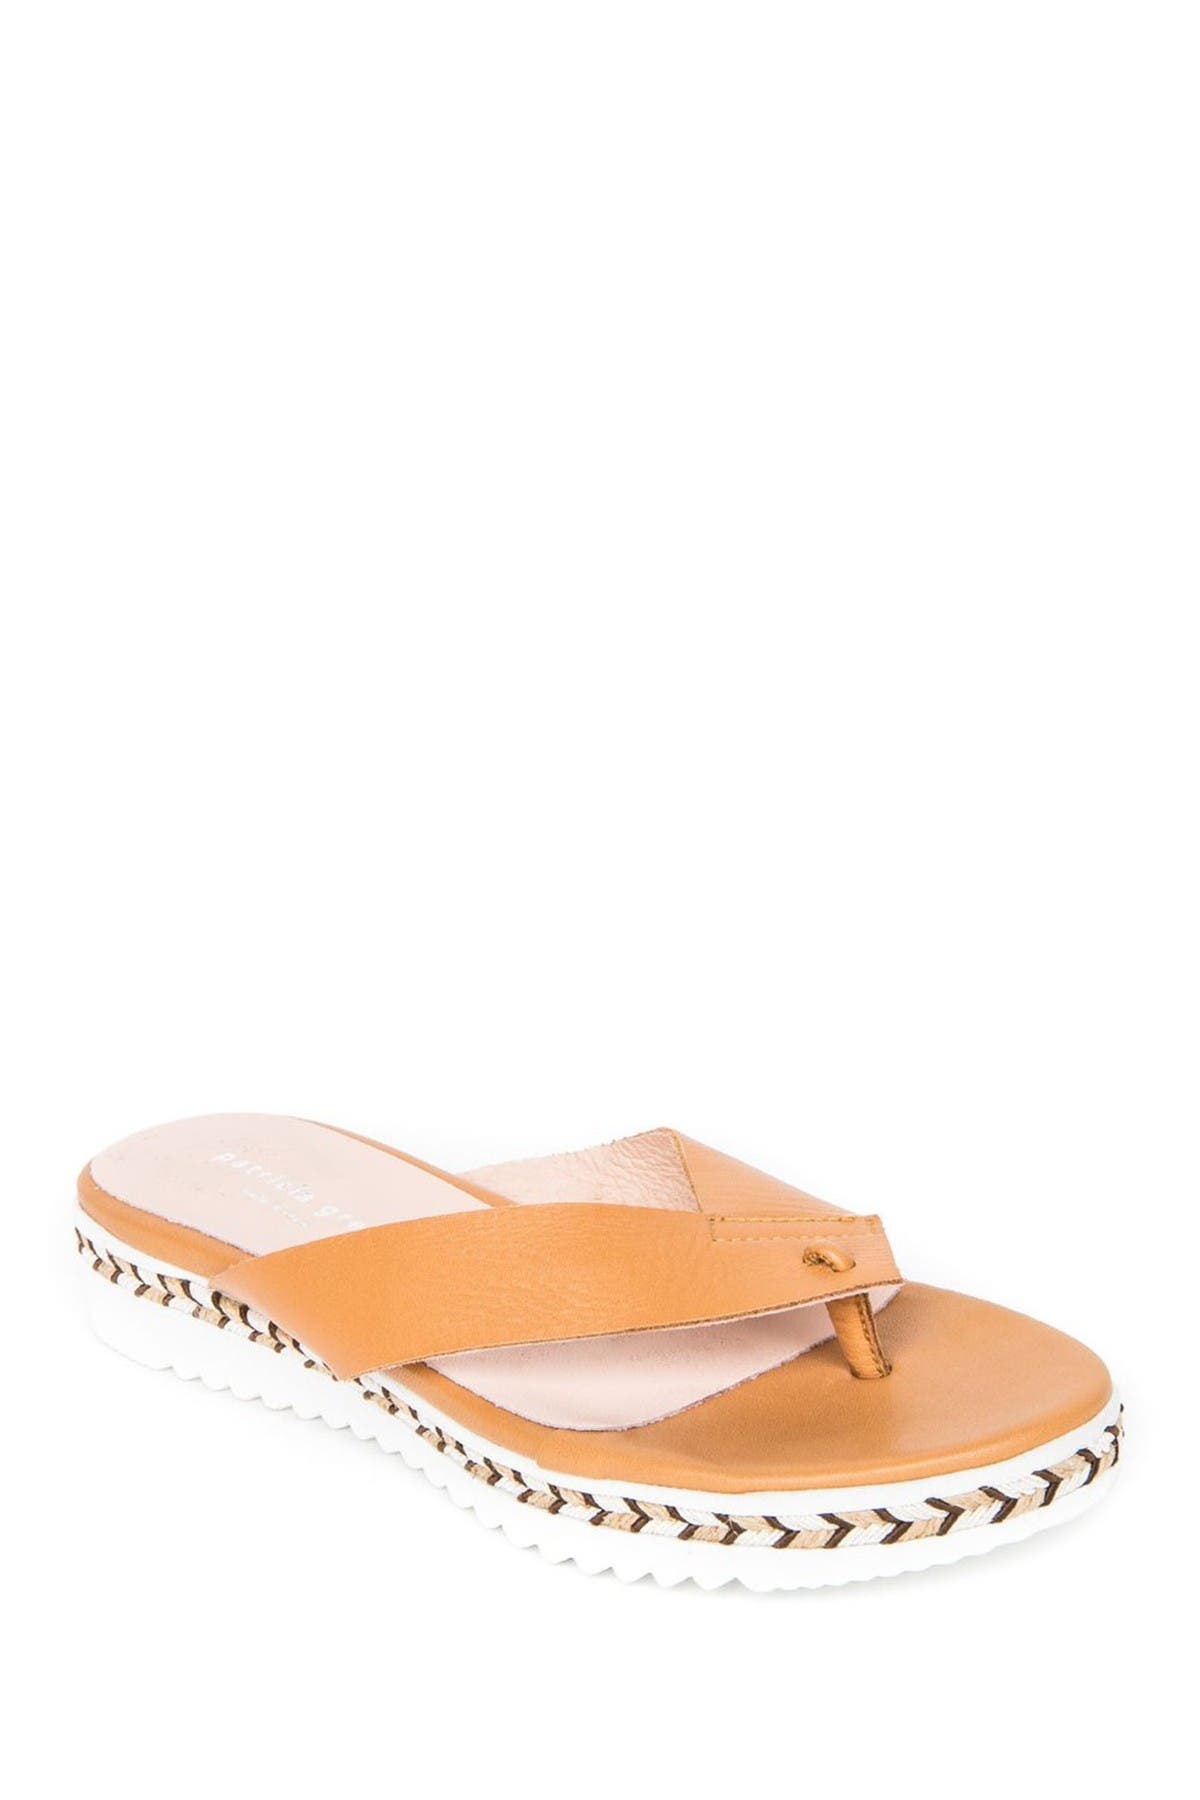 Image of Patricia Green Brooklyn Wedge Flip Flop